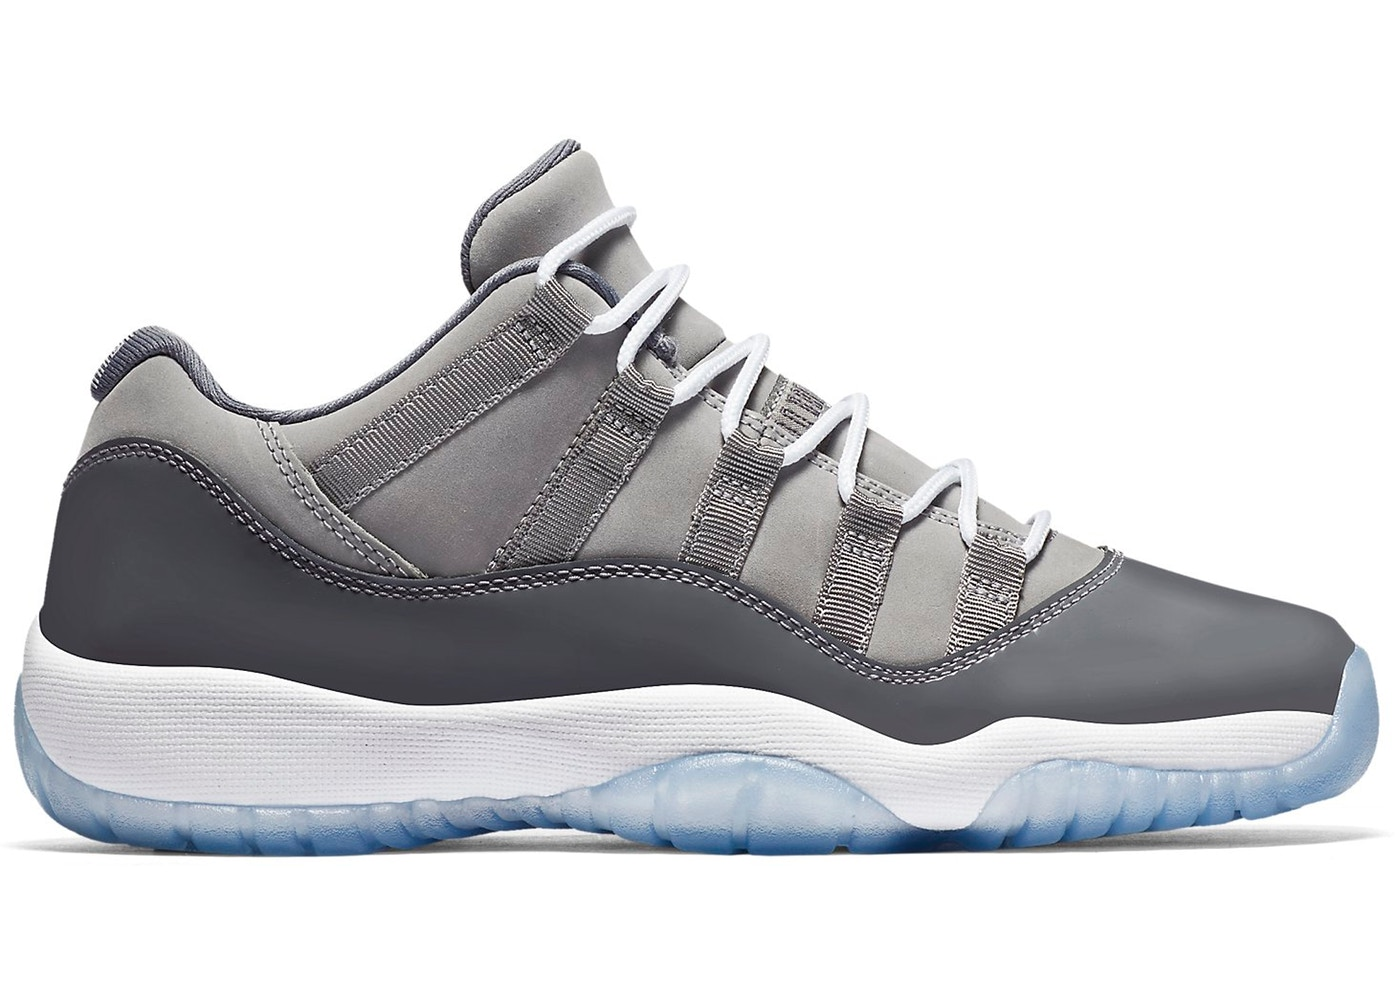 buy online 0965e 1f7ea Jordan 11 Retro Low Cool Grey (GS)